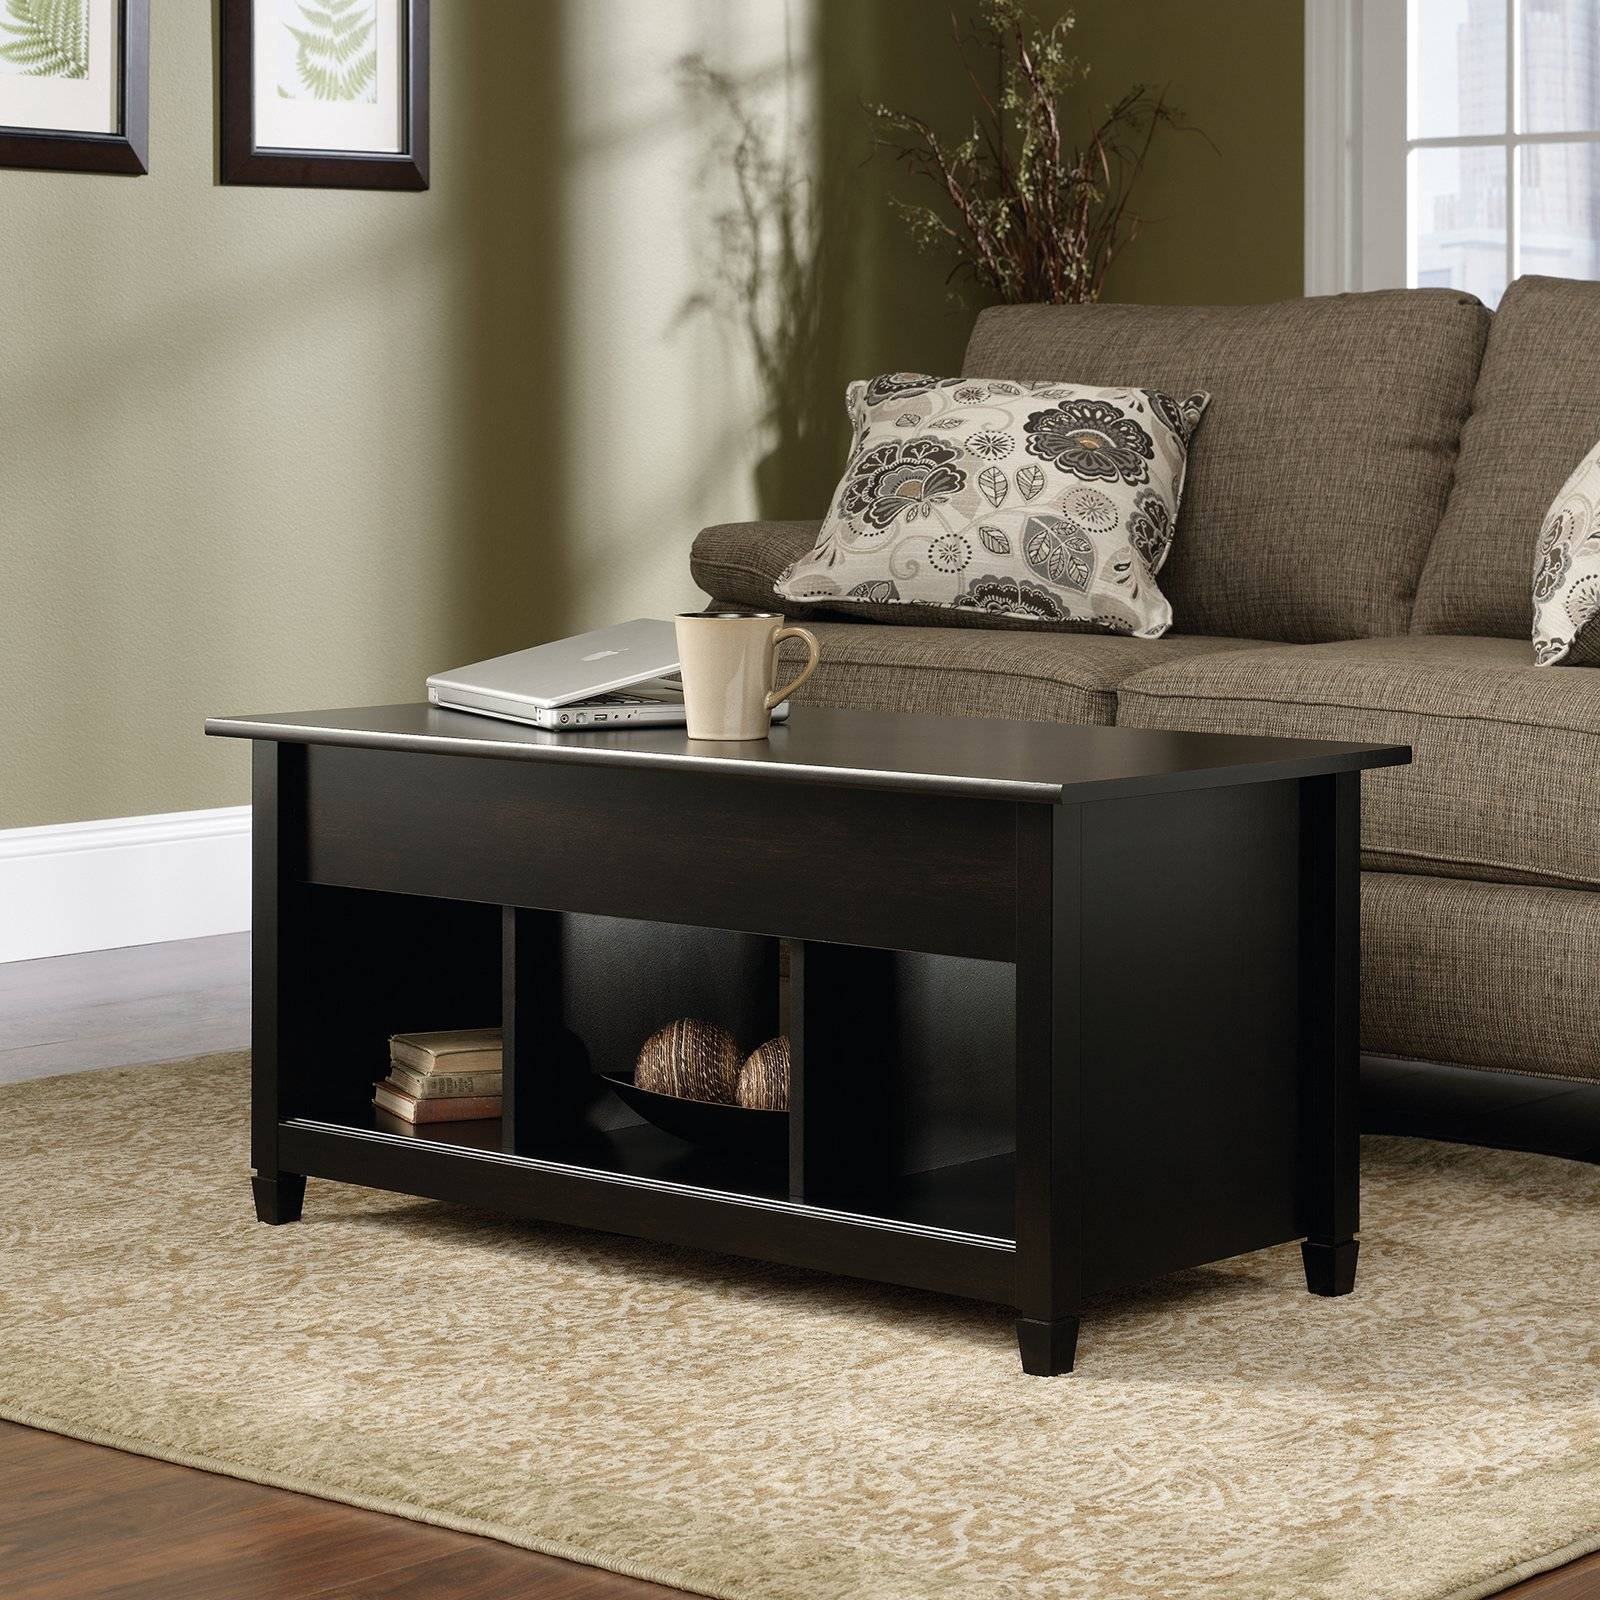 Turner Lift Top Coffee Table - Espresso | Hayneedle throughout Flip Top Coffee Tables (Image 27 of 30)